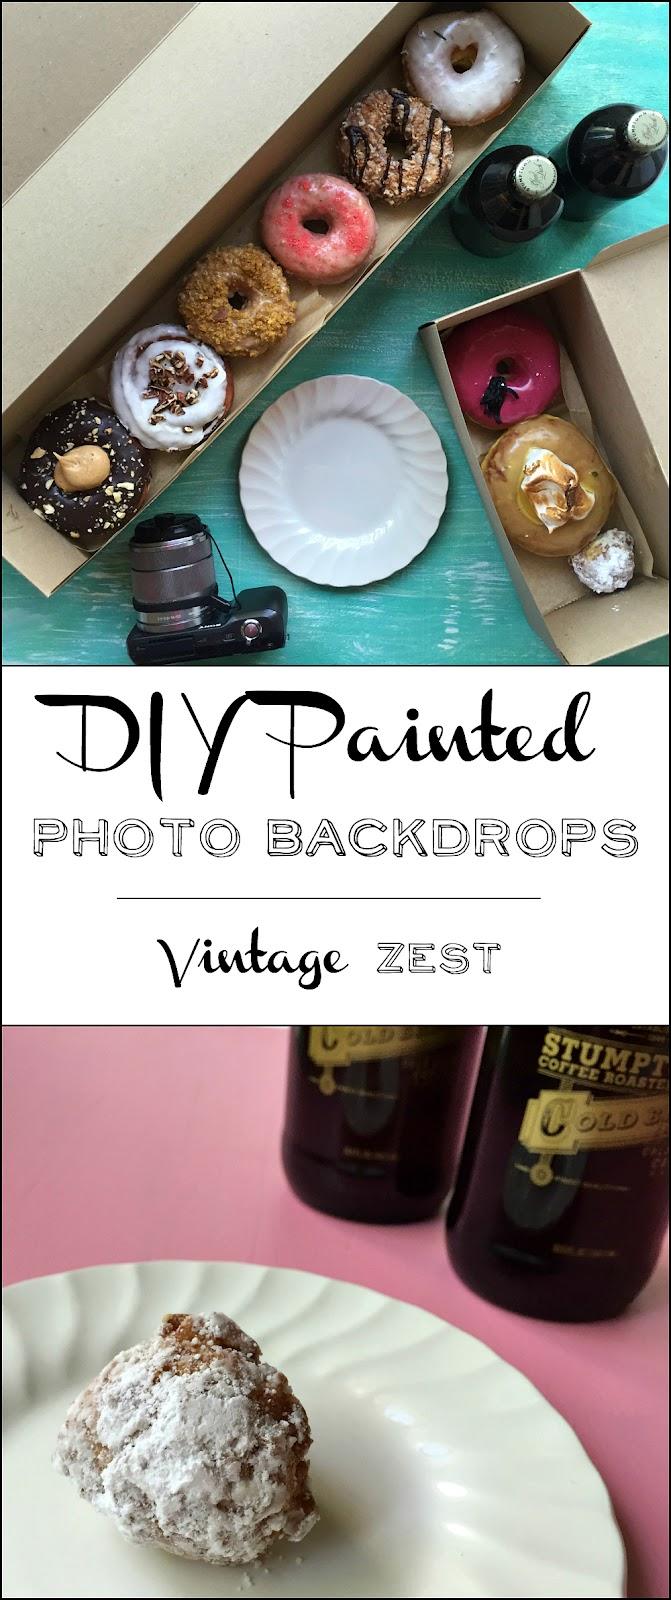 DIY Painted Photo Backdrops on Diane's Vintage Zest  #paint #photography #blogging